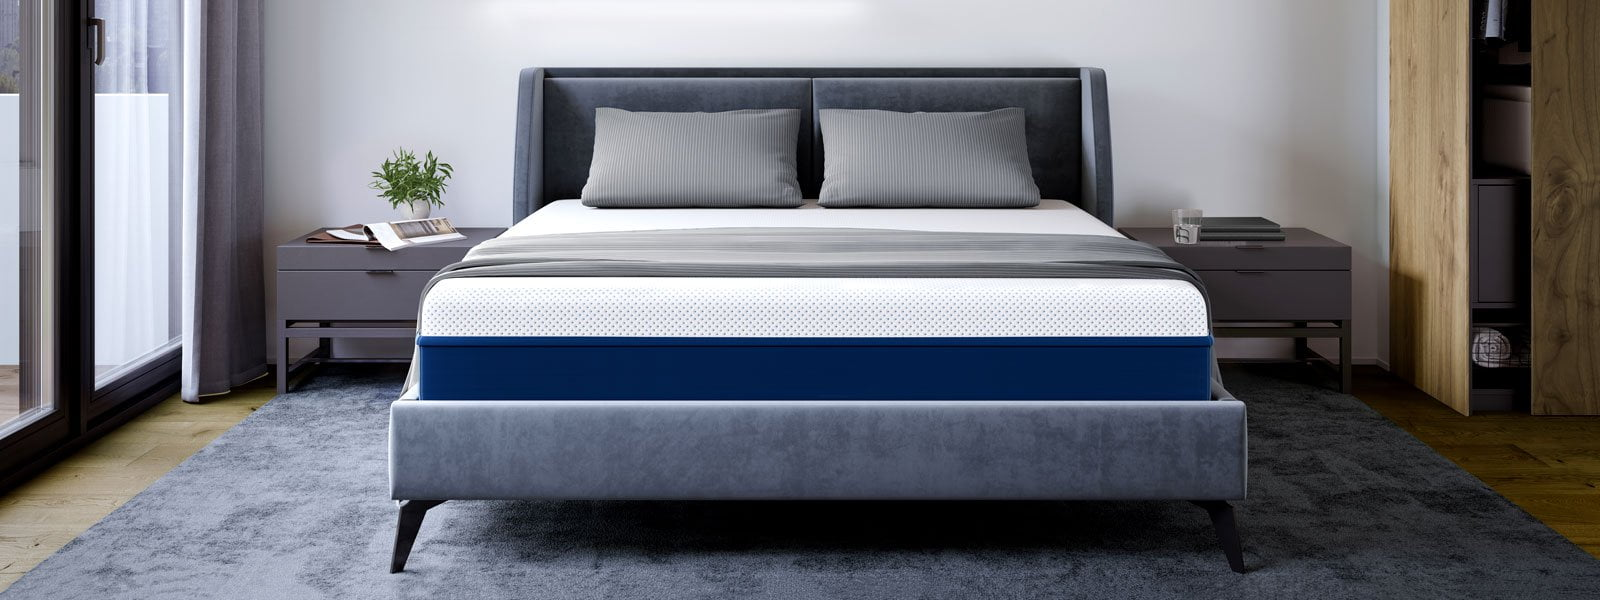 Read about how Amerisleep compares to Purple mattress reviews